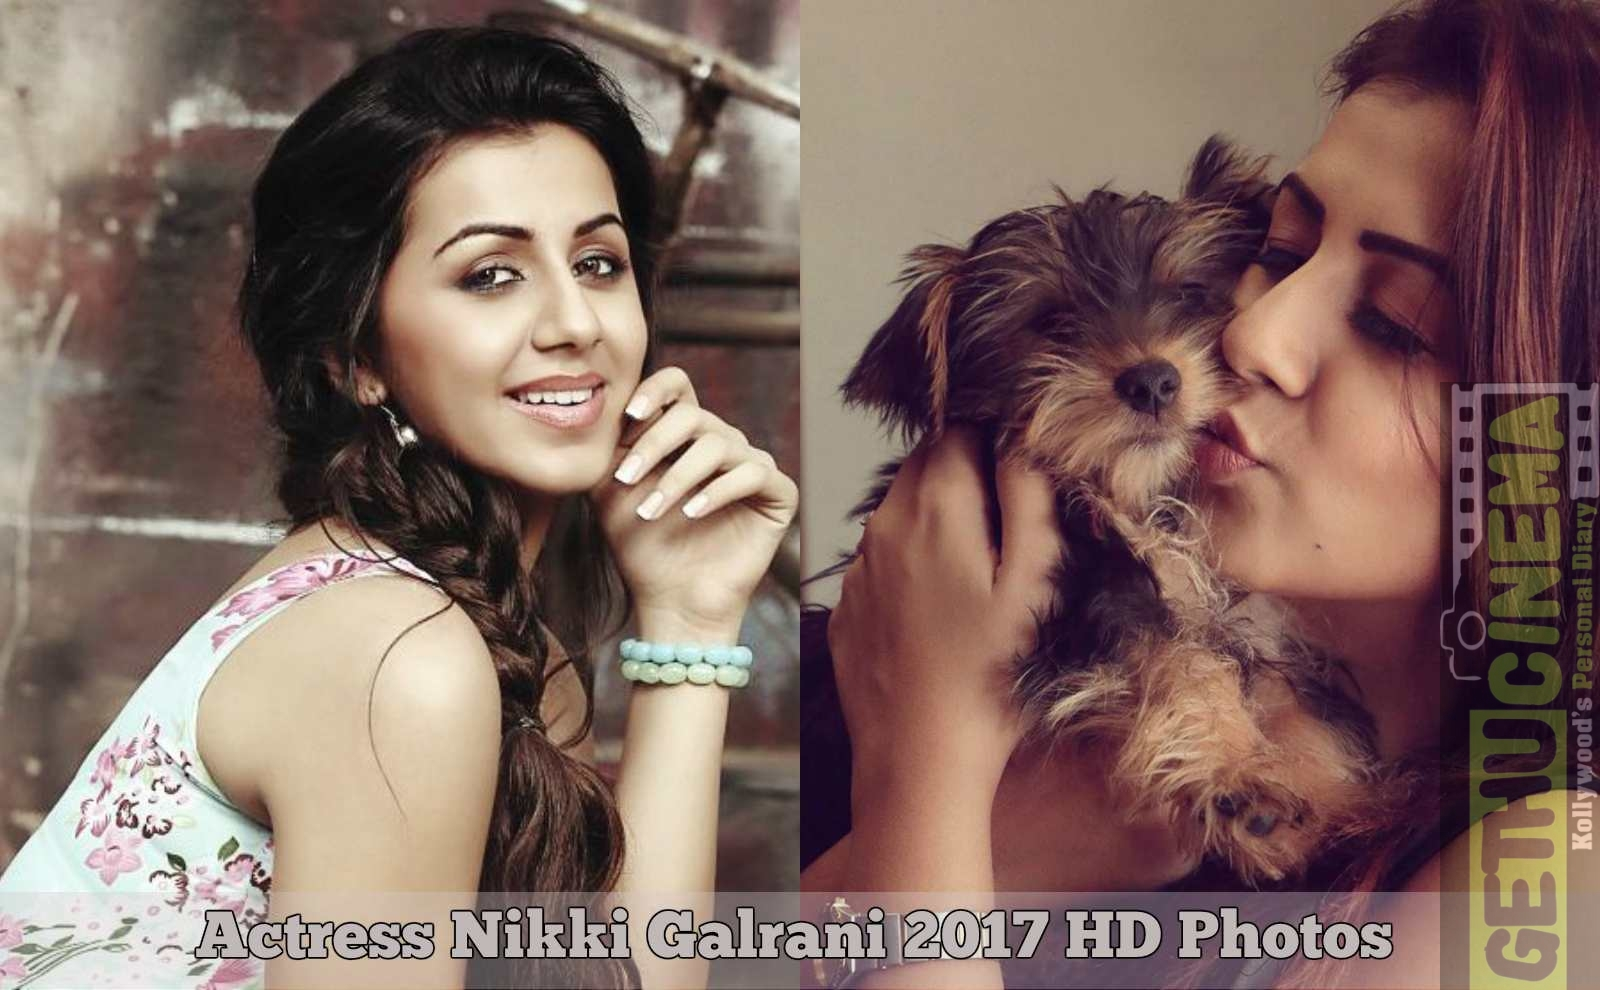 Actress Nikki Galrani 2017 HD Photos - Gethu Cinema